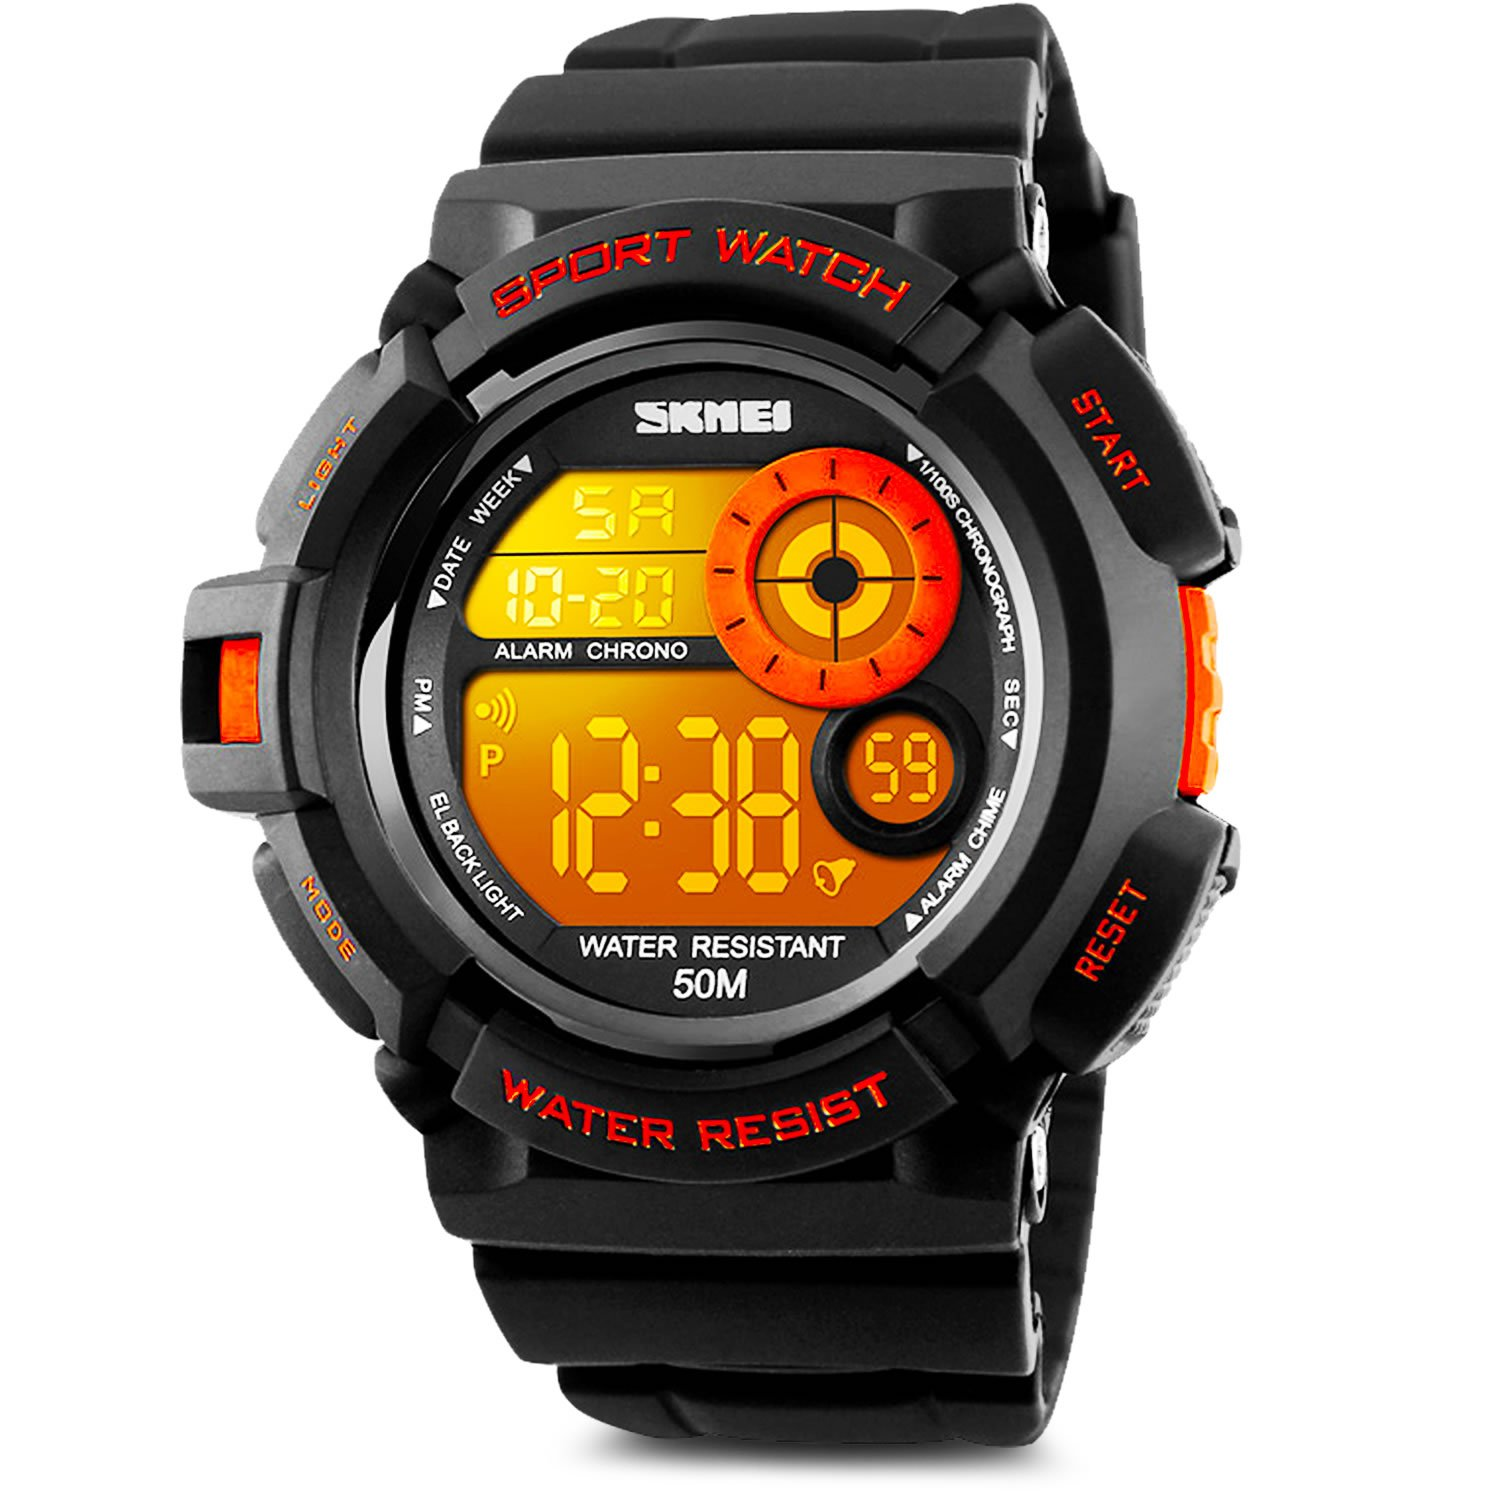 Aposon Men's Digital Sports Watch, Military Army Electronic Watches Running 50M 5 ATM Waterproof Sports LED Wristwatch Water Resistant with Stopwatch -Orange